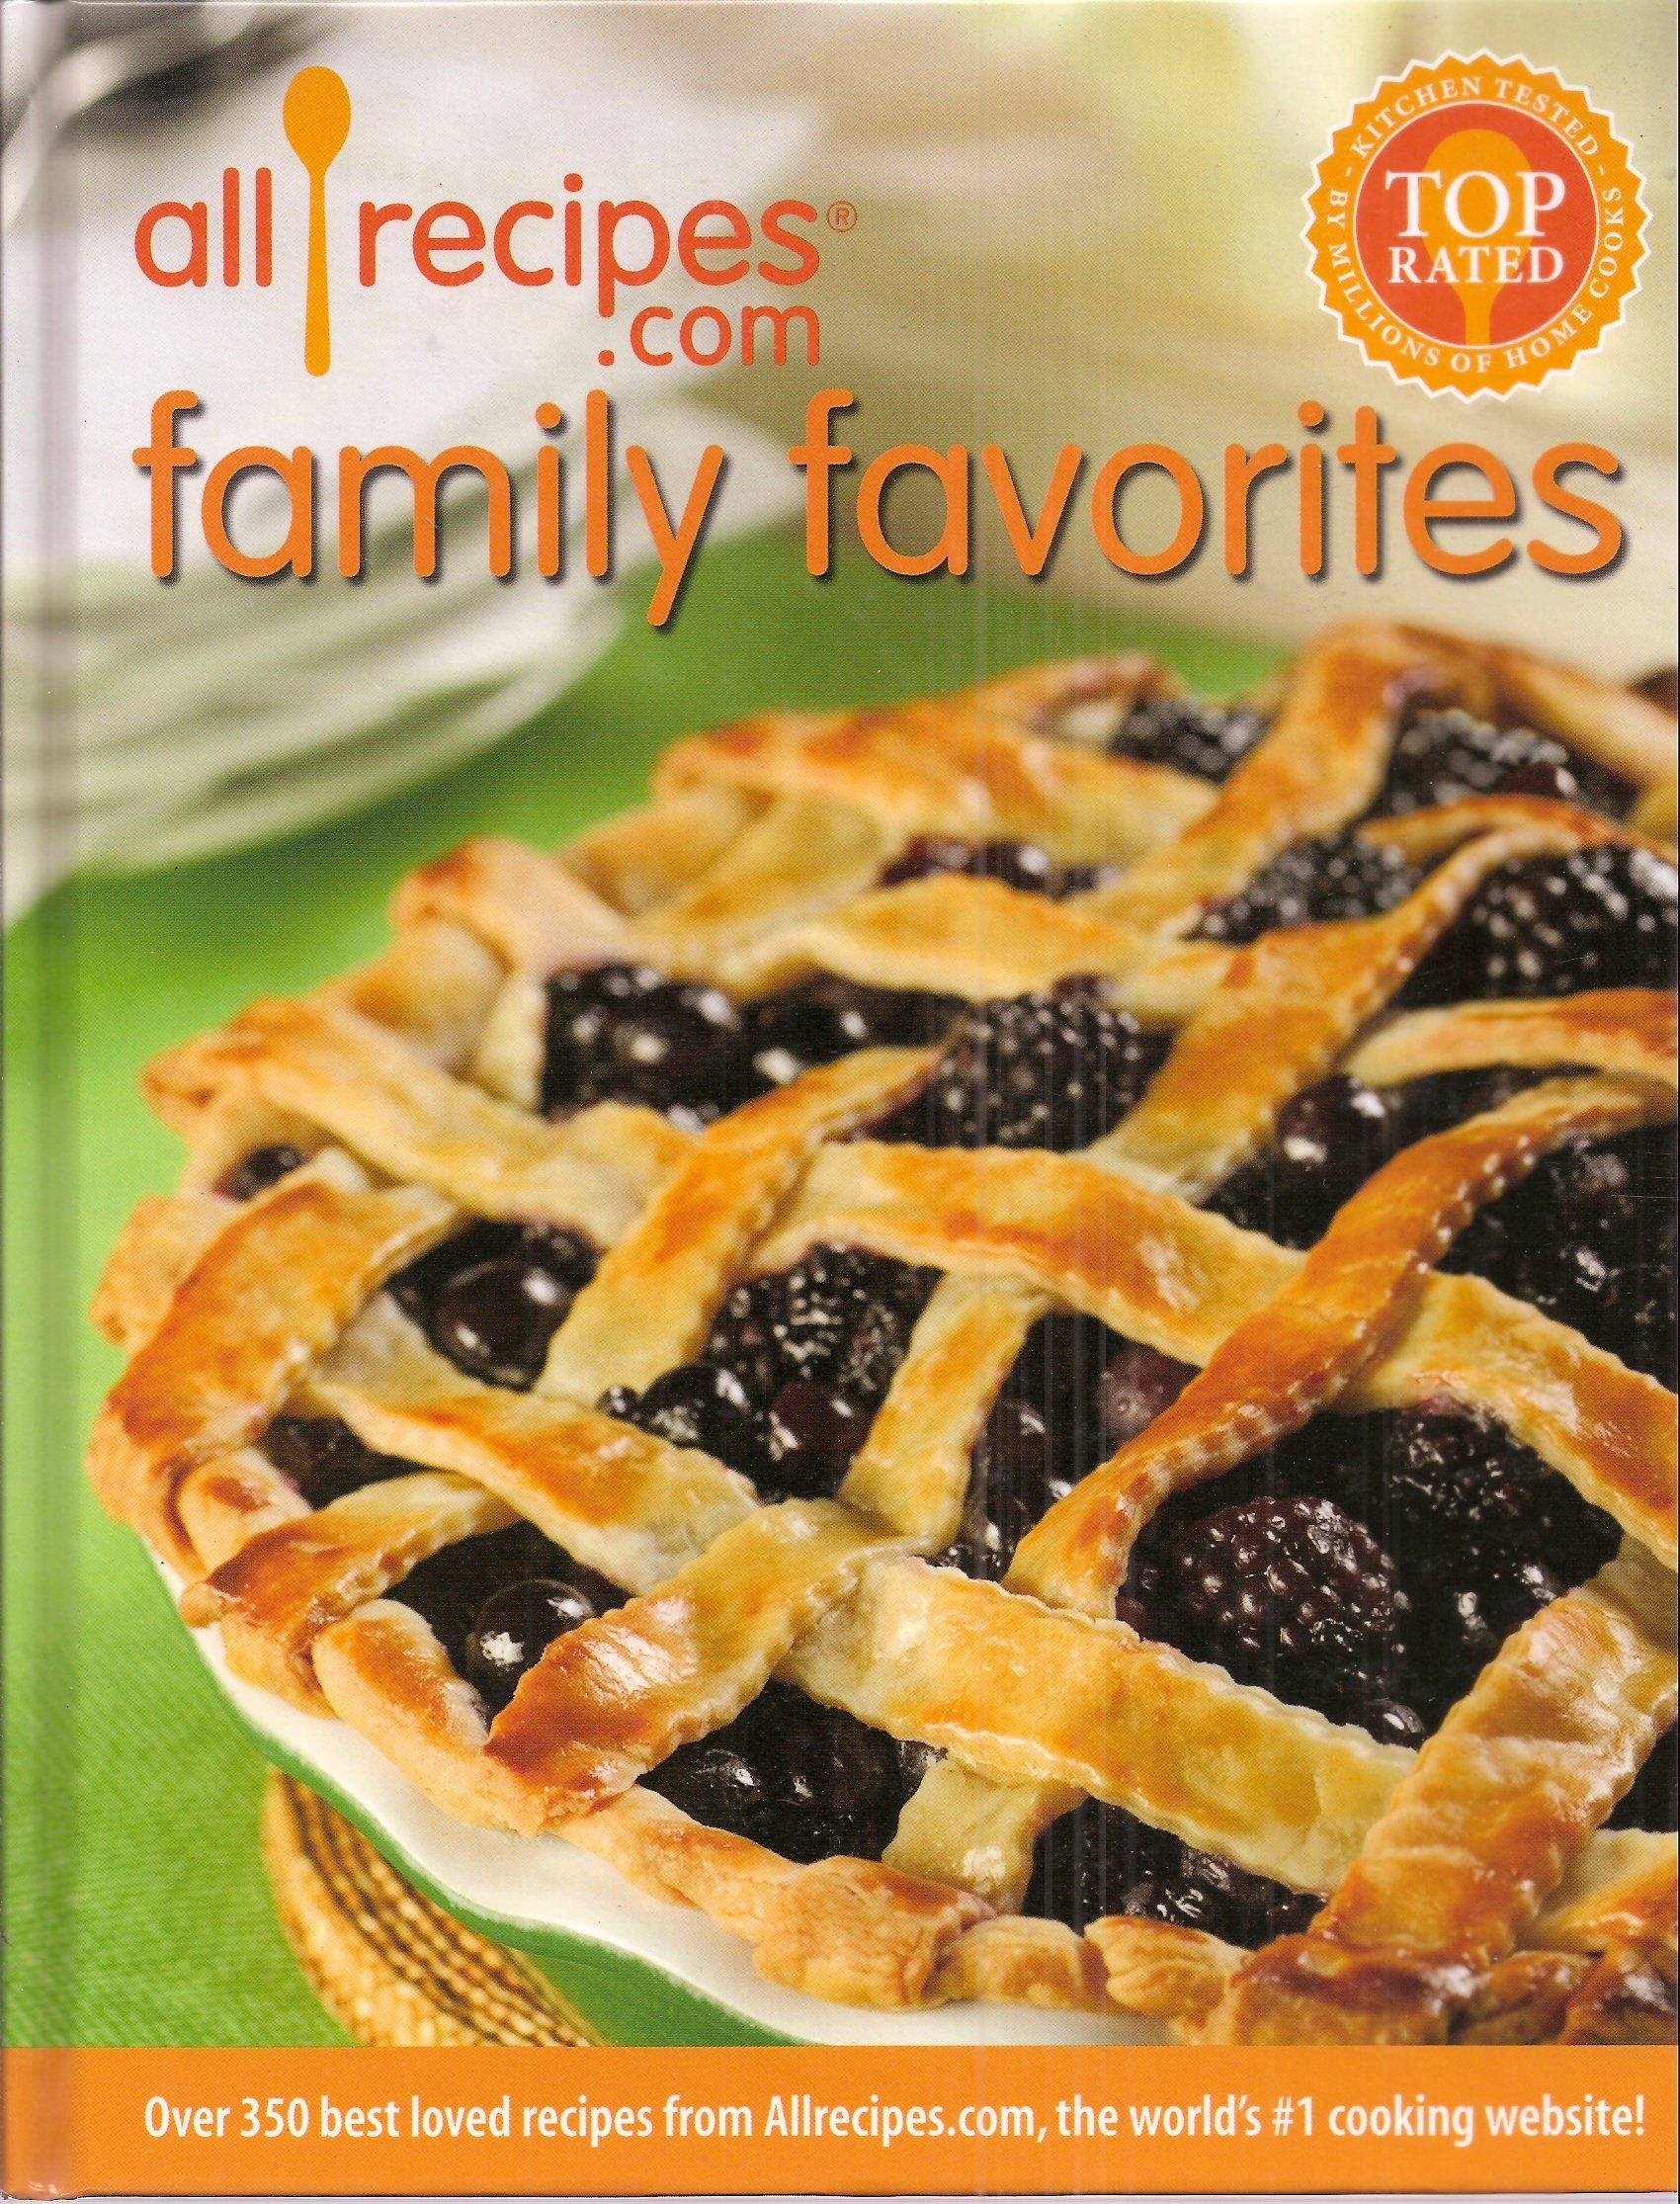 Read Online All Recipes.com Family Favorites: Over 350 Best Loved Recipes from Allrecipes.com, the World's #1 Cooking Website pdf epub